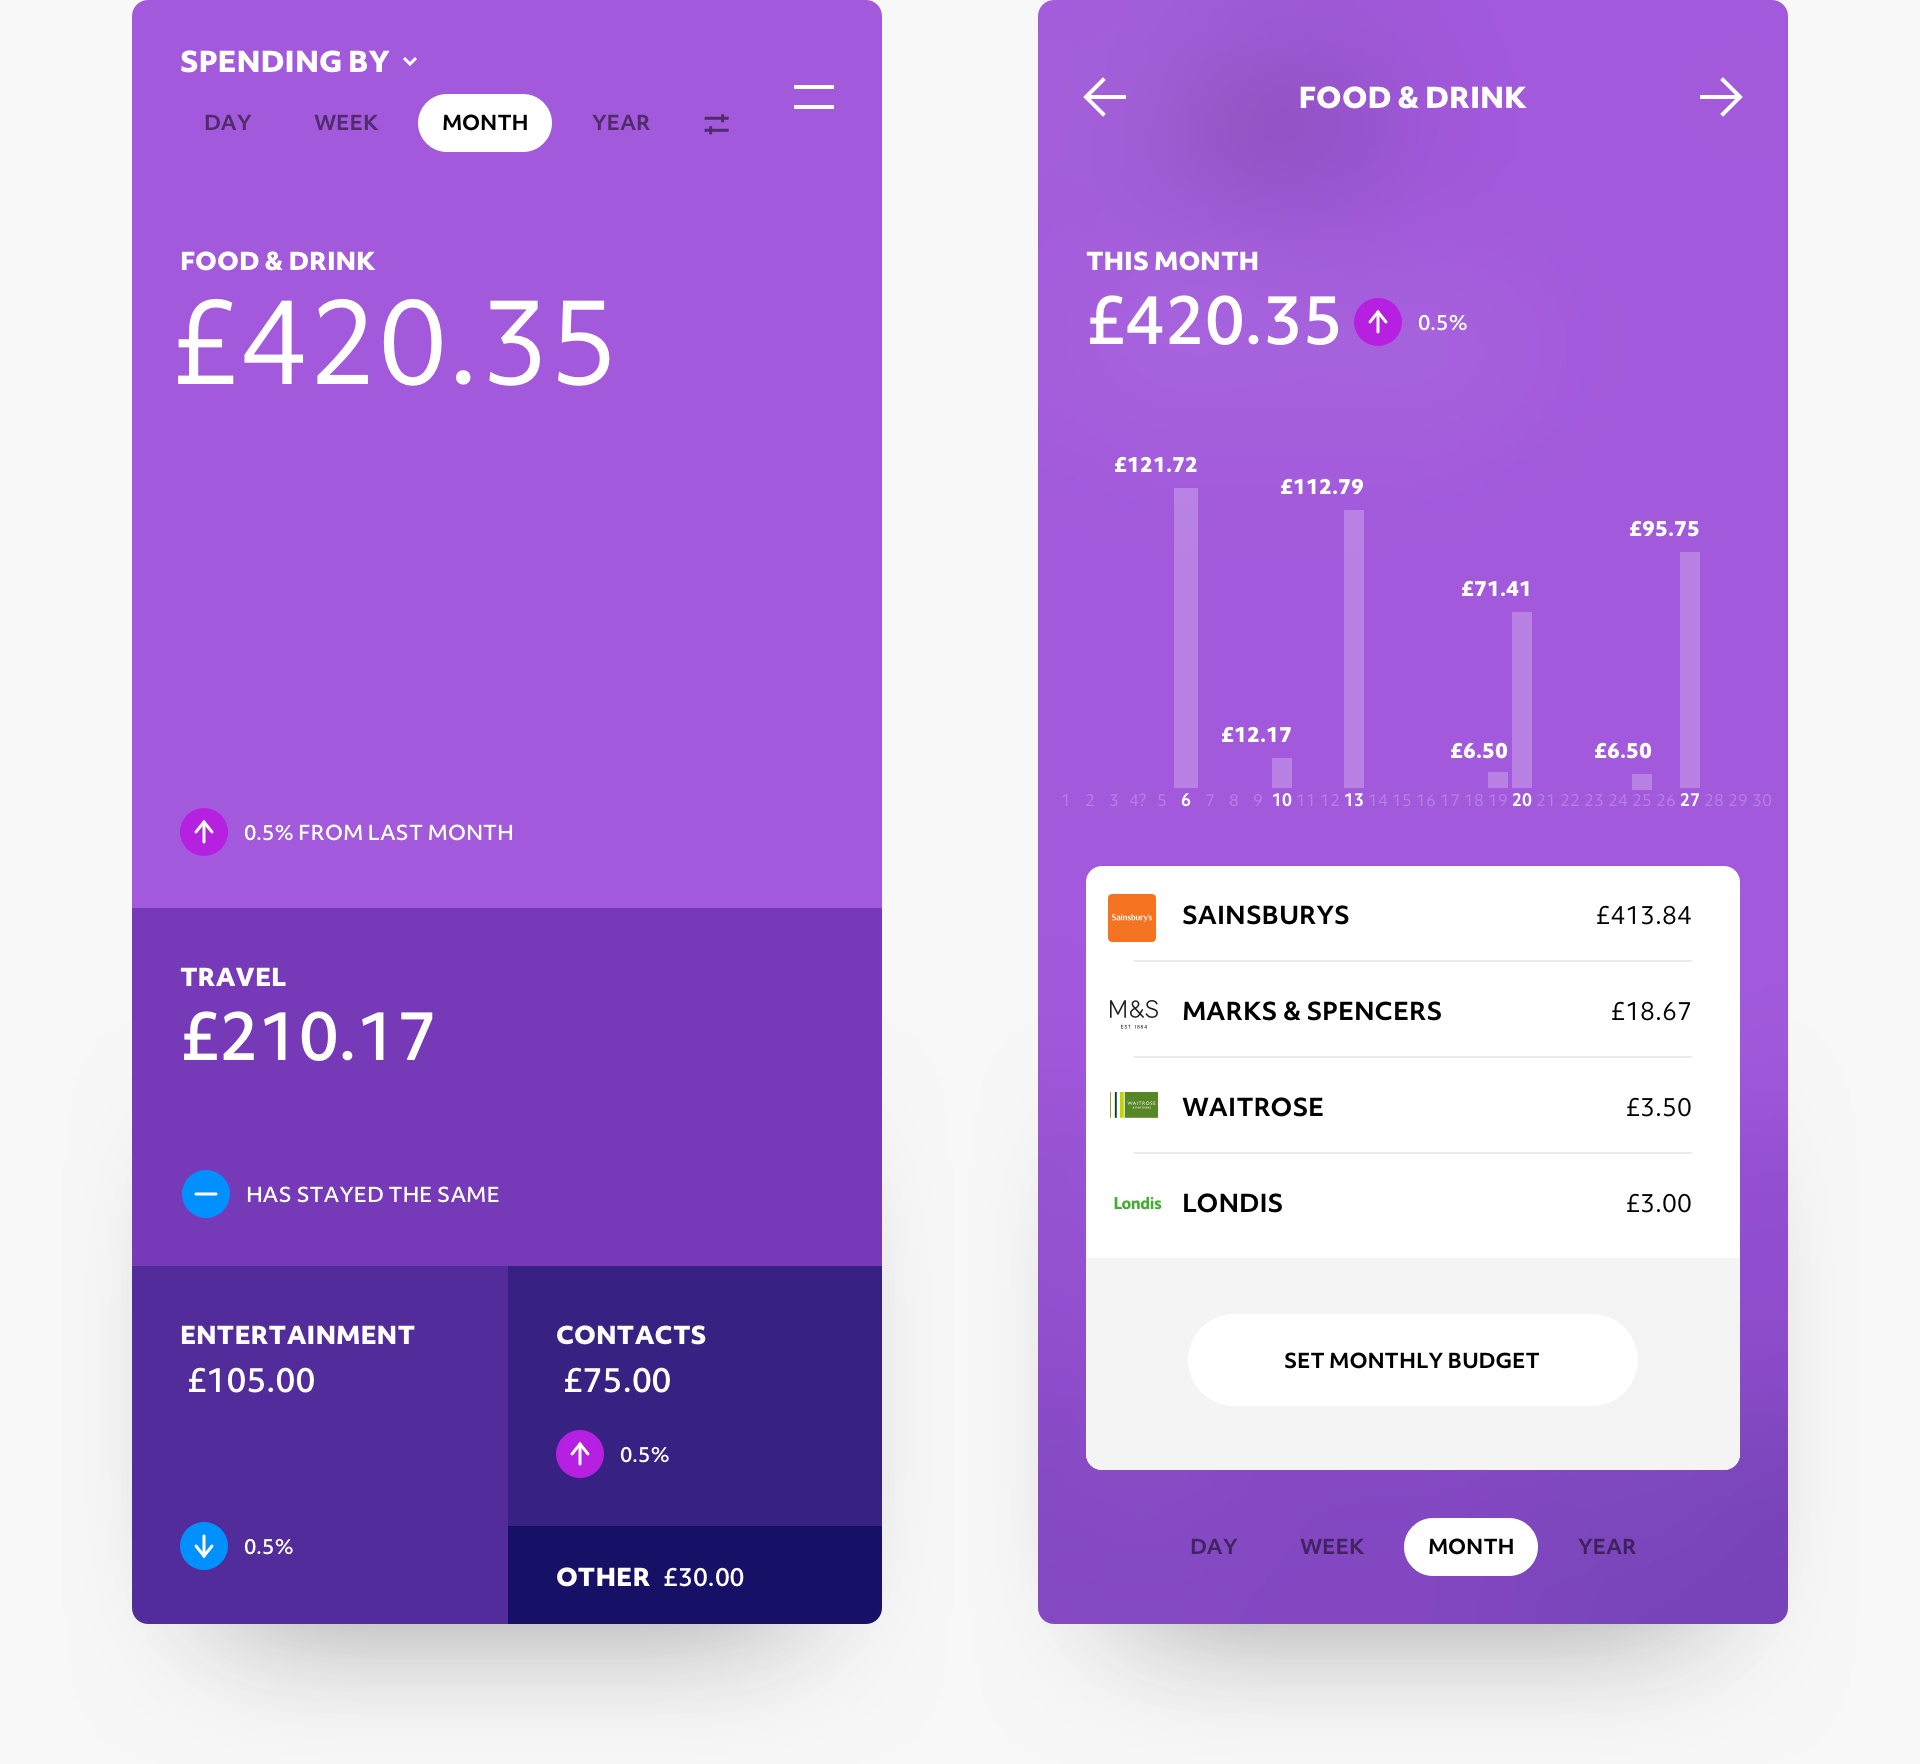 Knowledge matched product design for retail banking